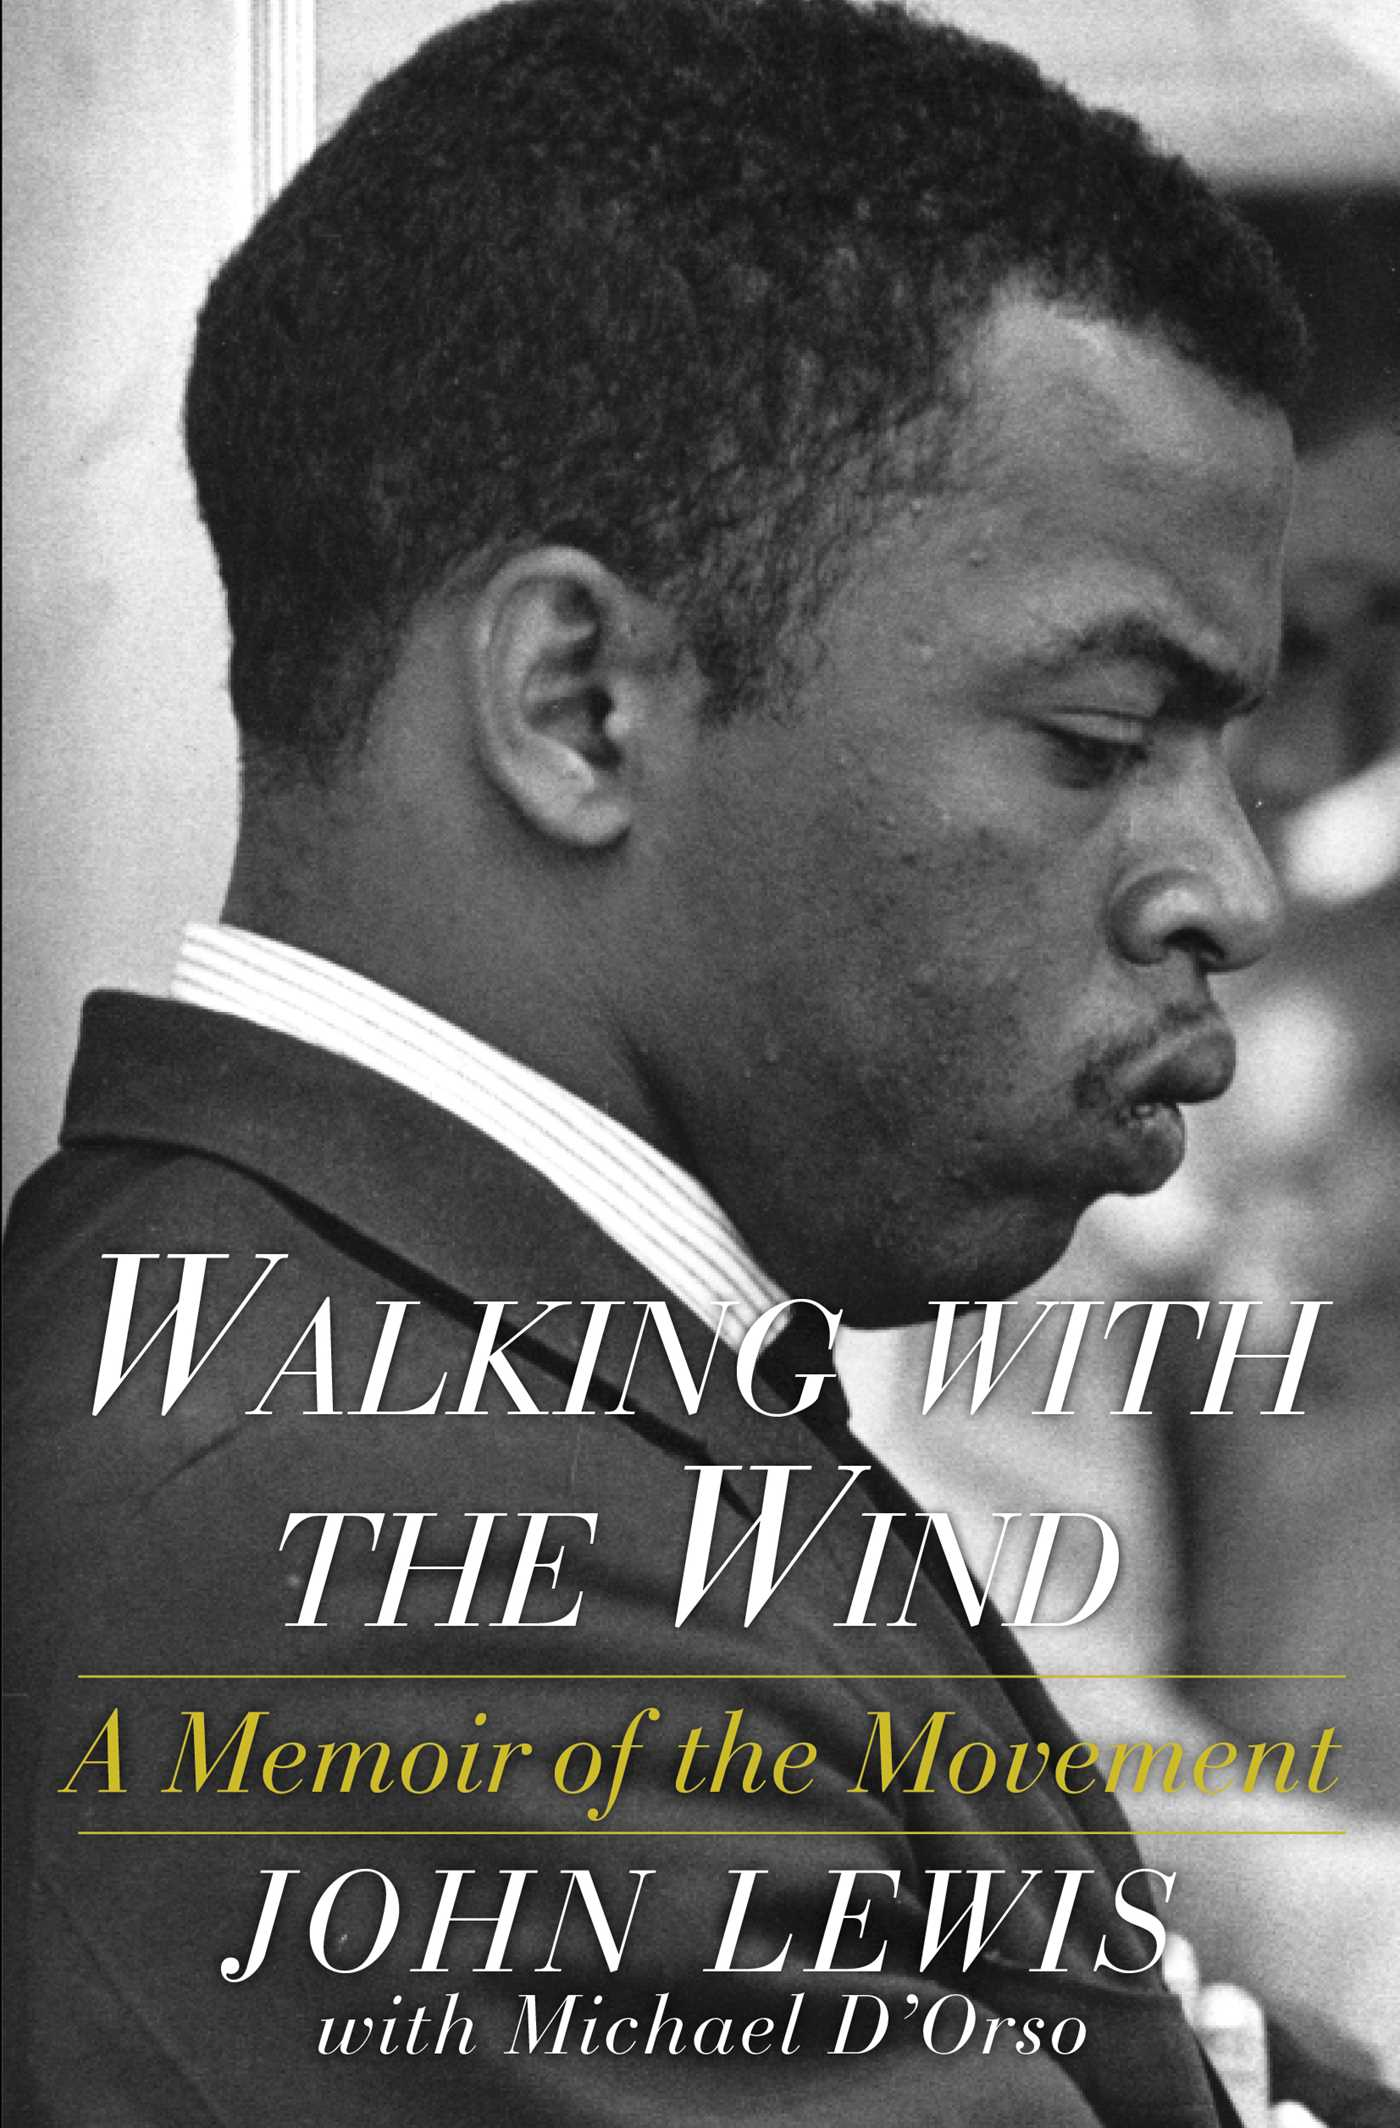 Image result for walking with the wind book cover